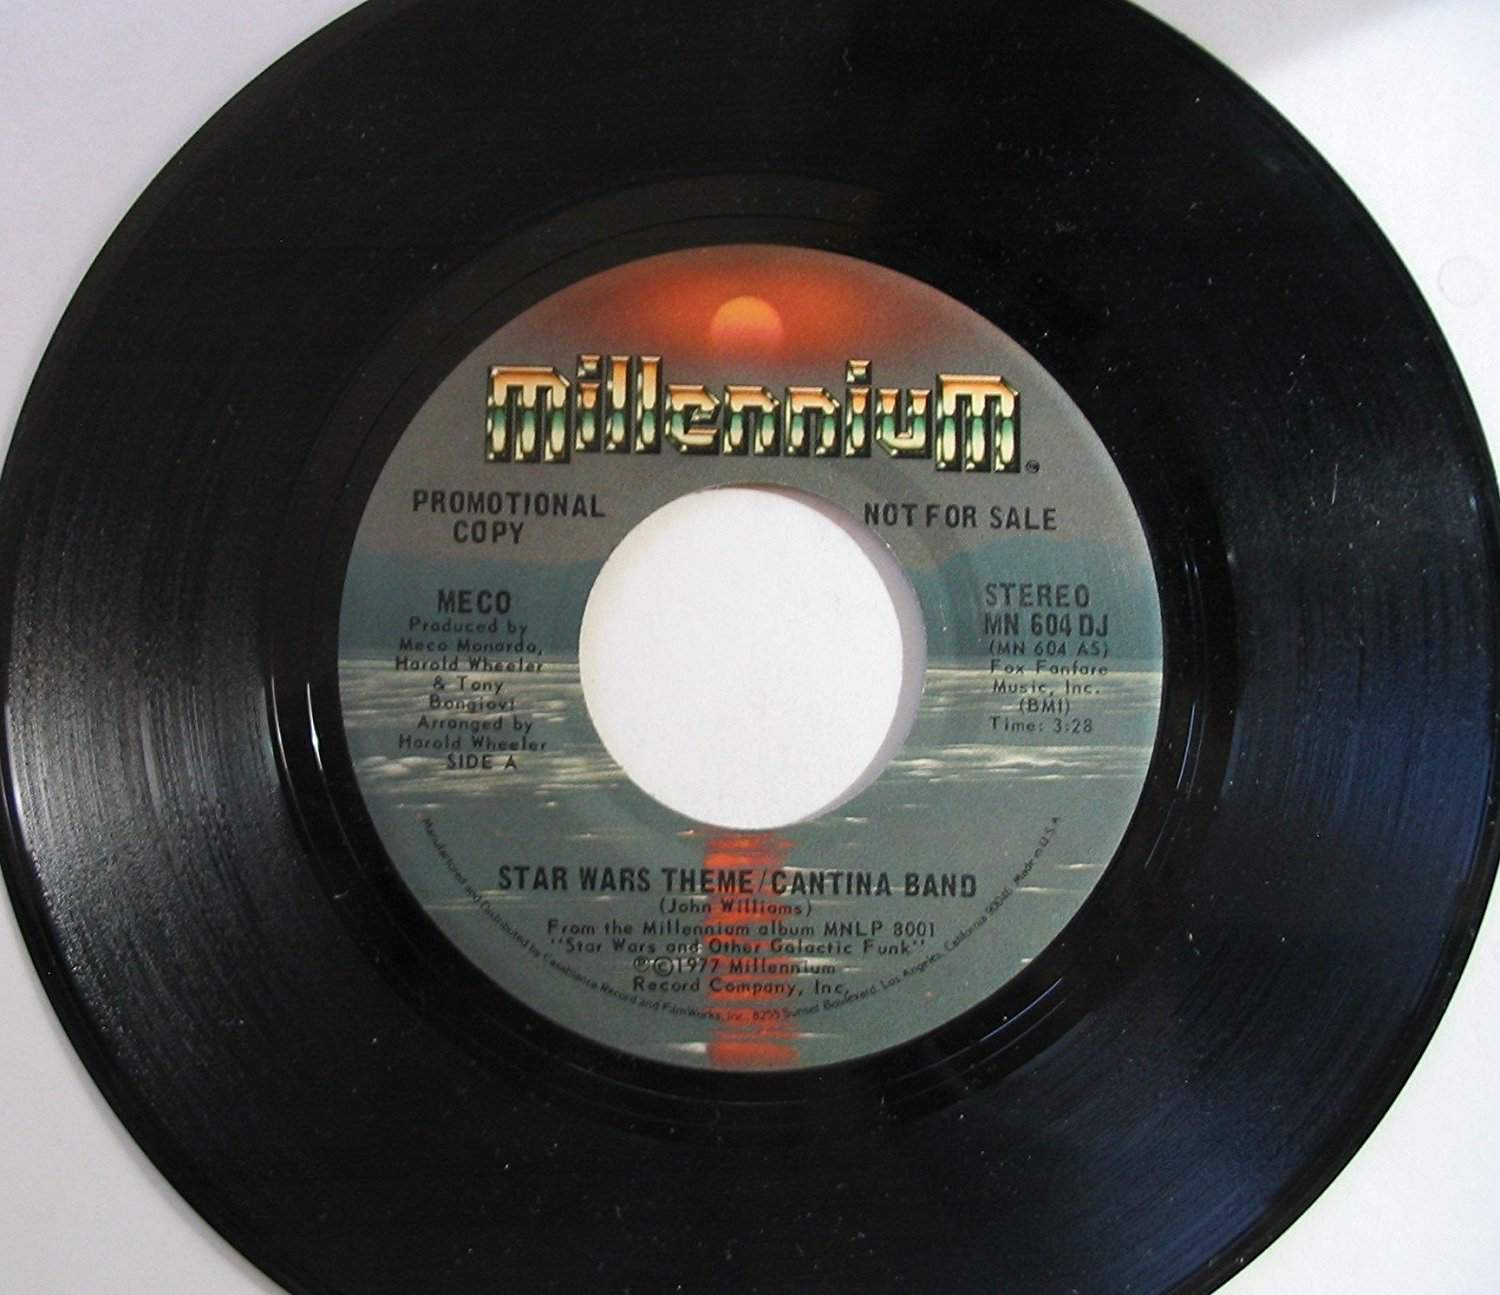 """""""Star Wars Theme/Cantina Band,"""" by Meco on 45"""